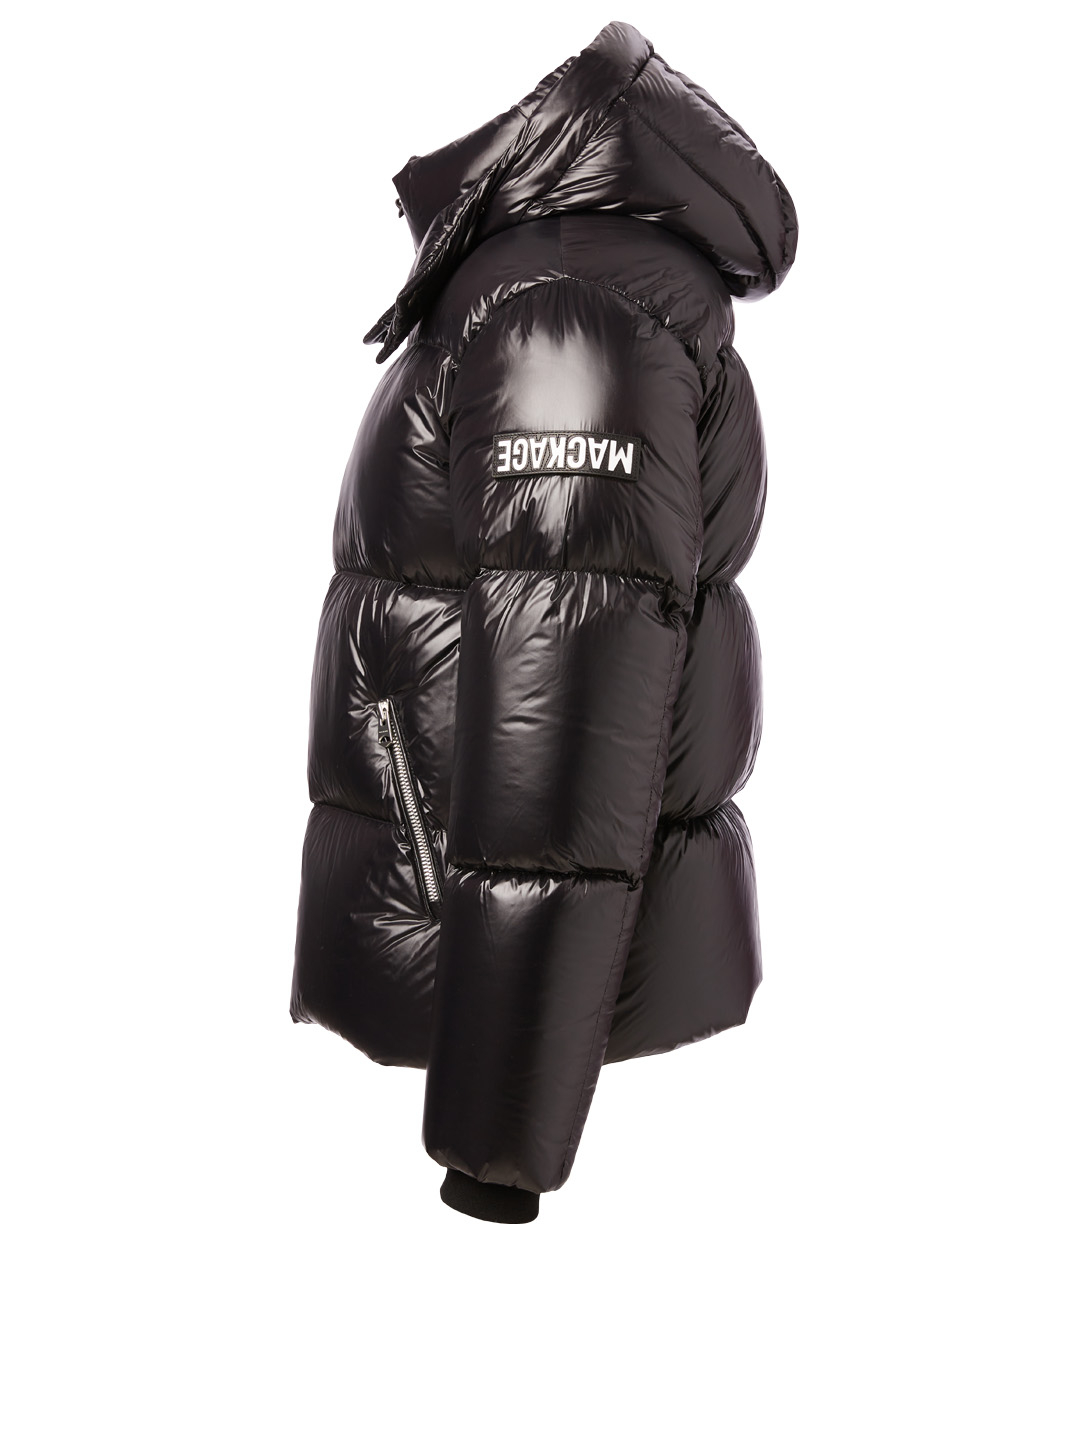 MACKAGE Kent Down Puffer Jacket Men's Black